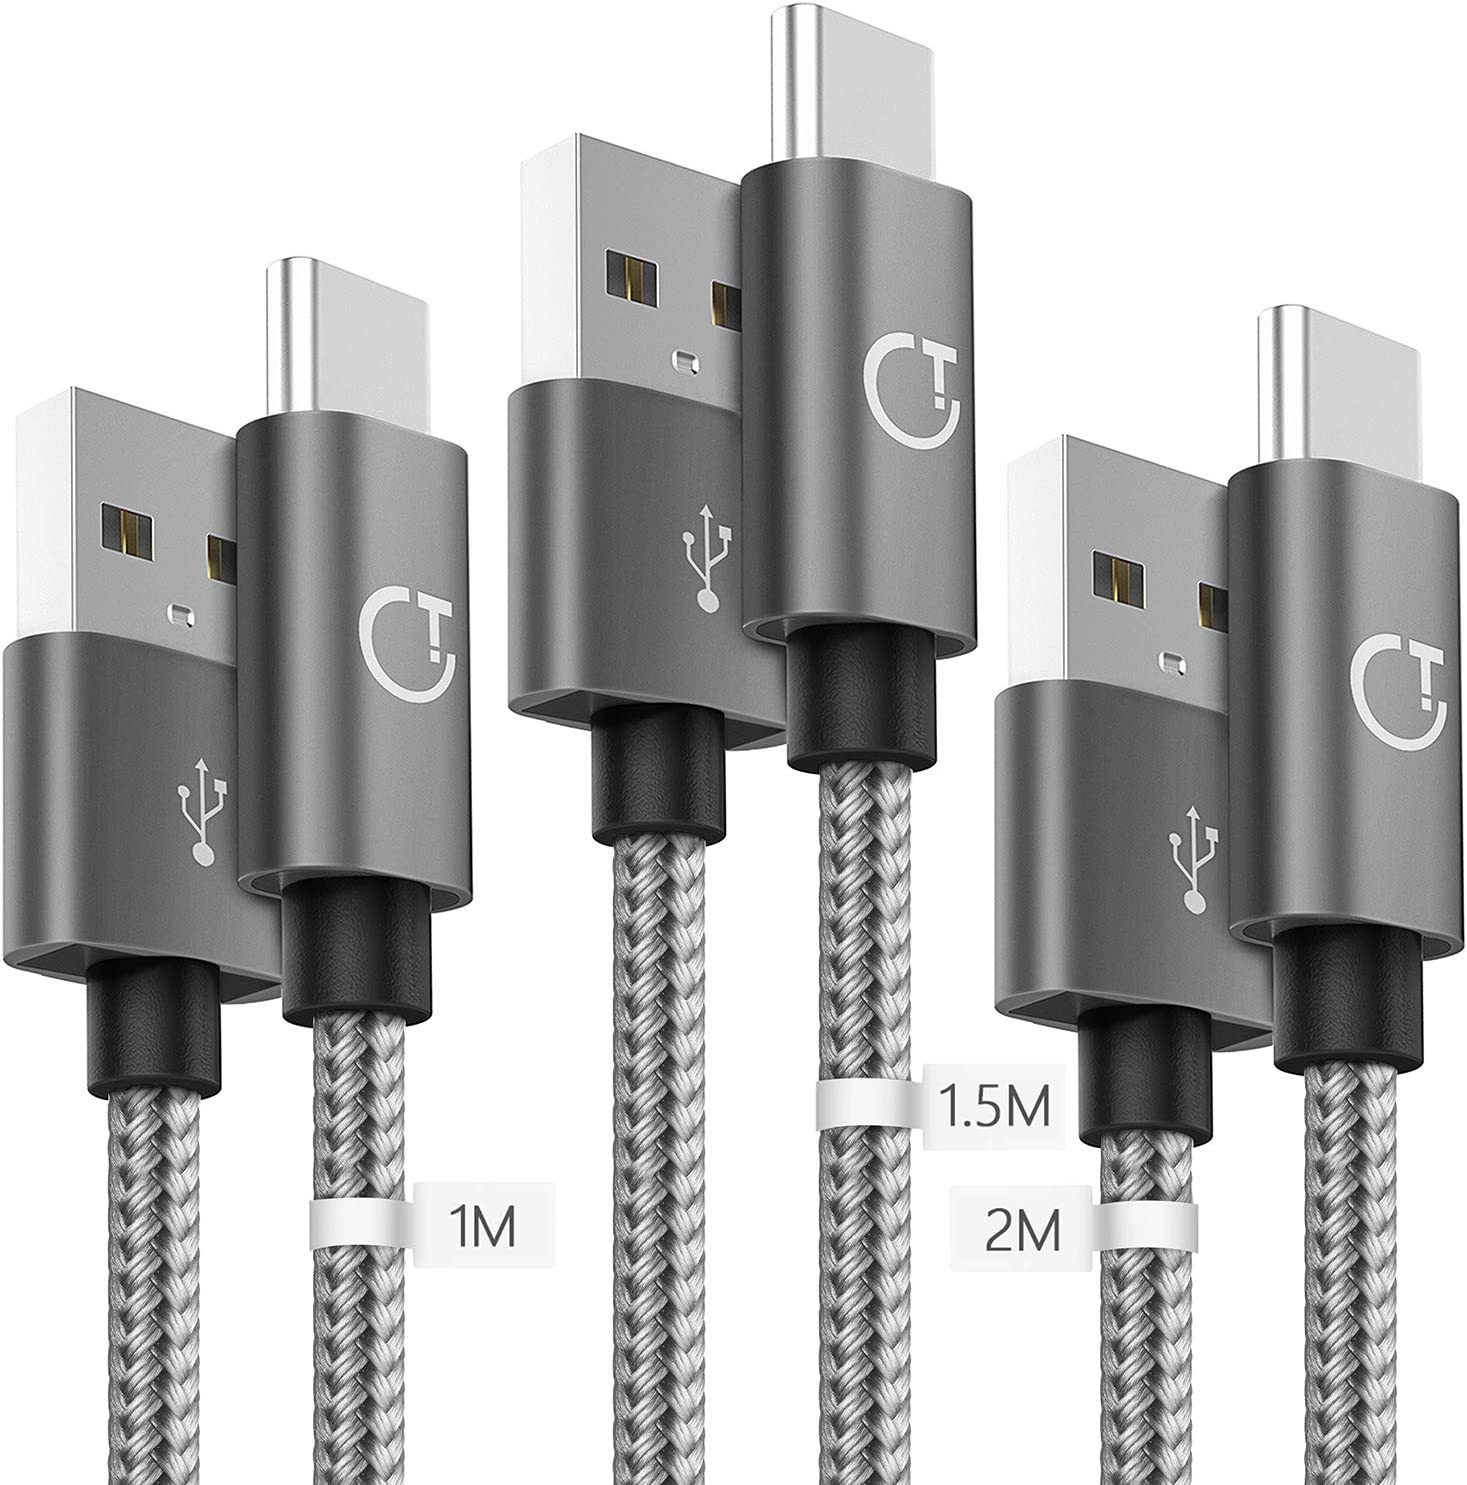 Gritin Cable USB C, 3-Pack [1M +1.5M +2M] Cable USB Tipo C Nylon Trenzado Sincronización para Samsung Galaxy S10/S9/S8, Huawei P30/P20/Mate 20, Xiaomi Redmi Note 7 etc.